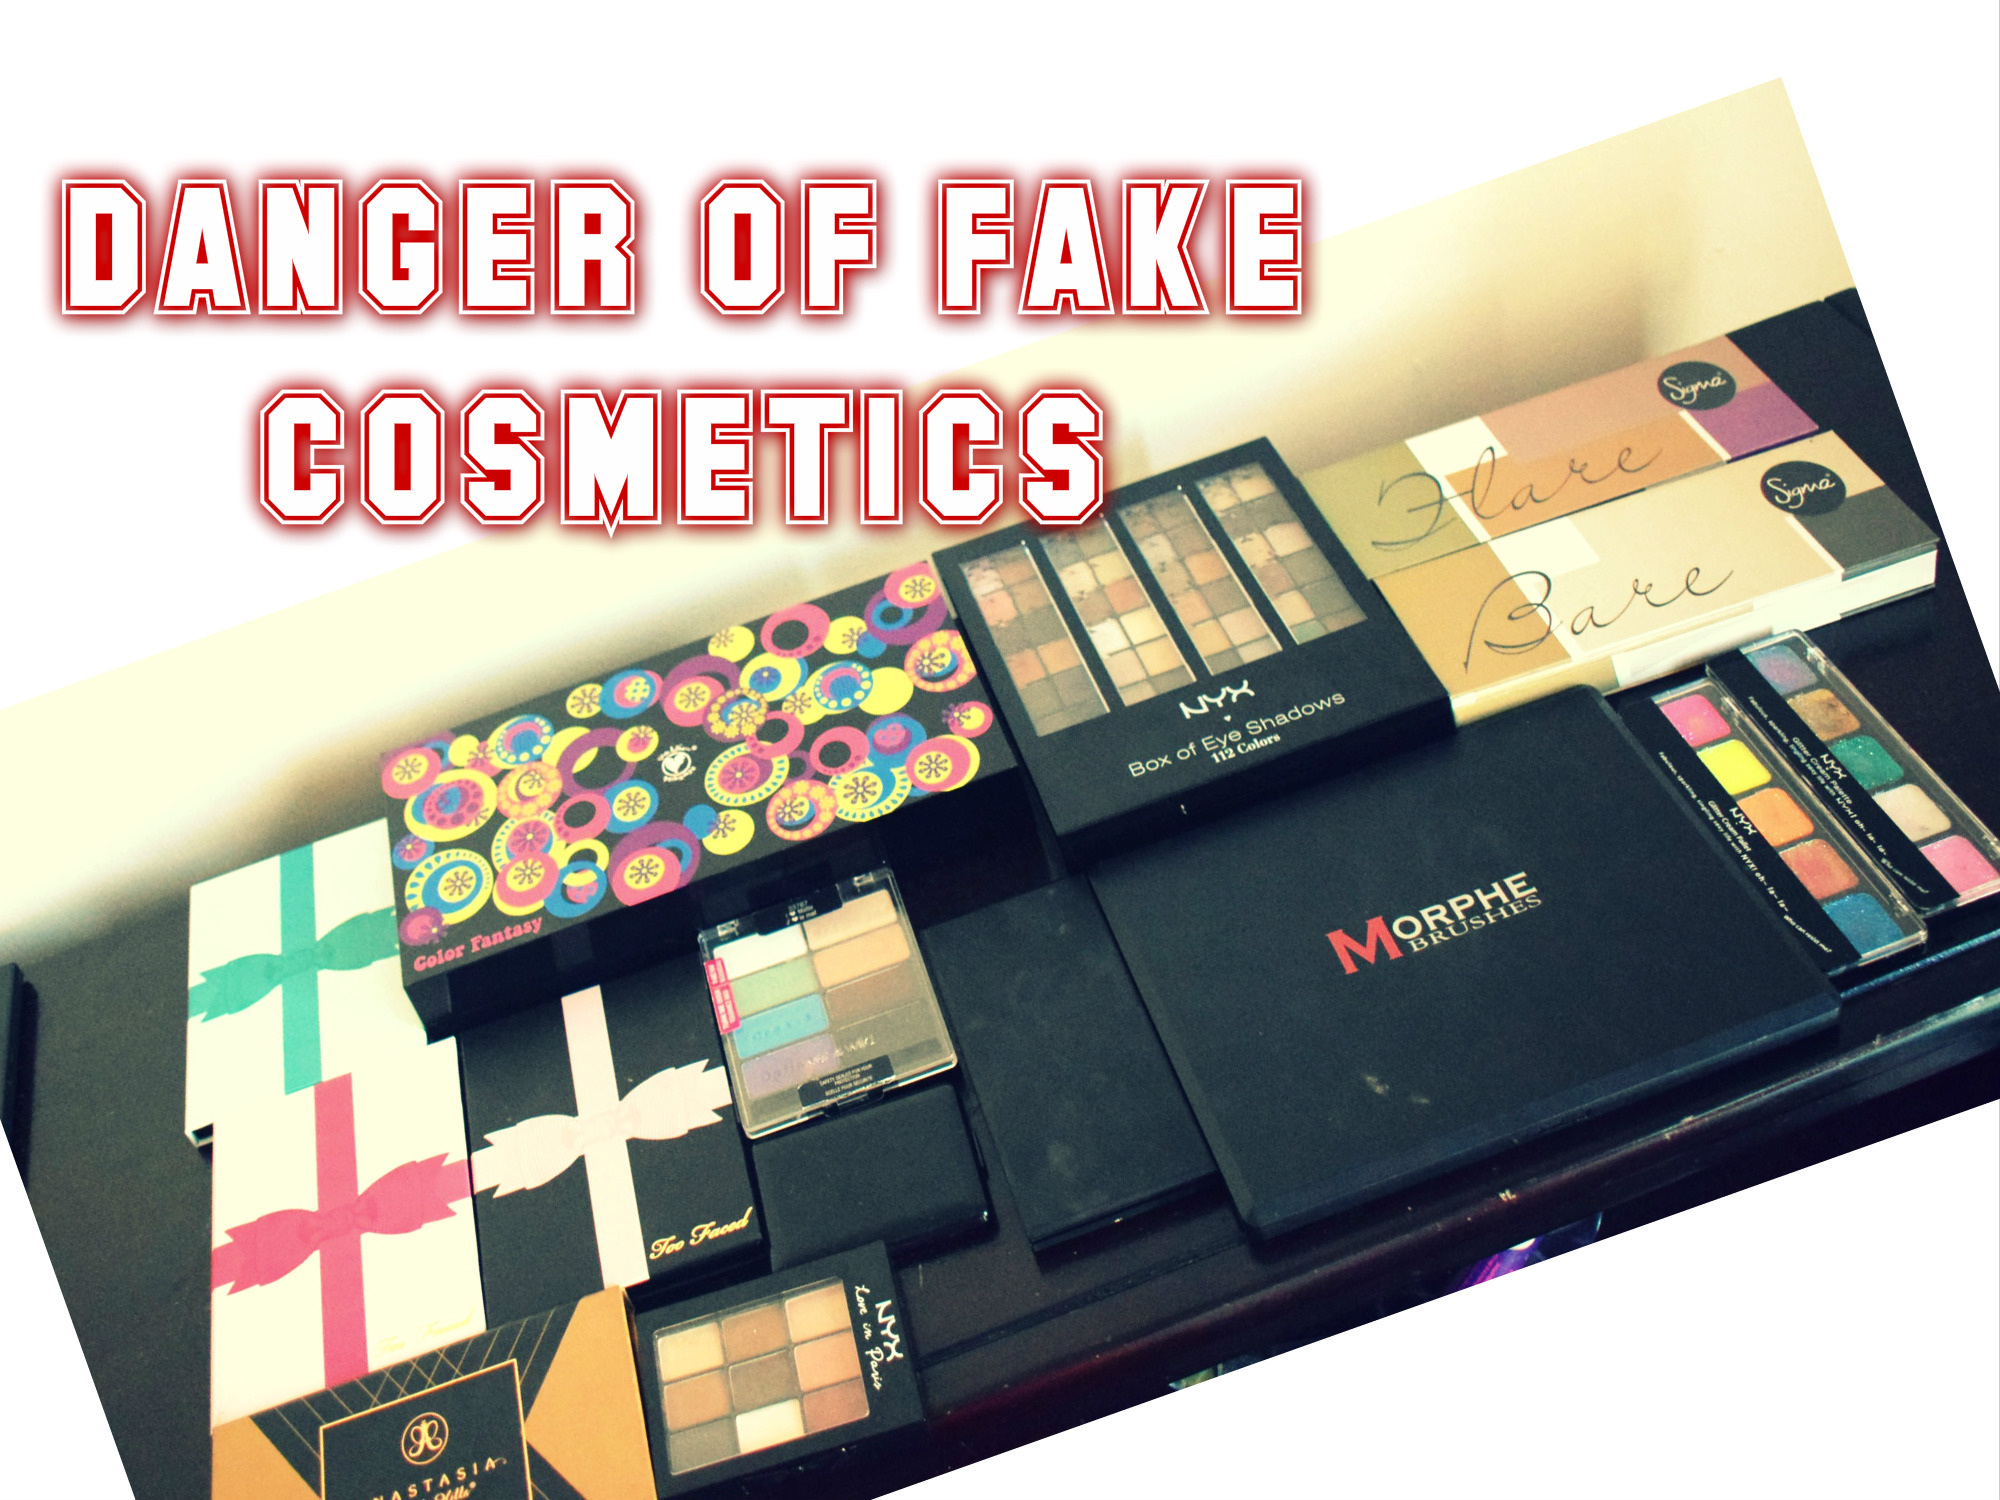 dangeroffakecosmetics